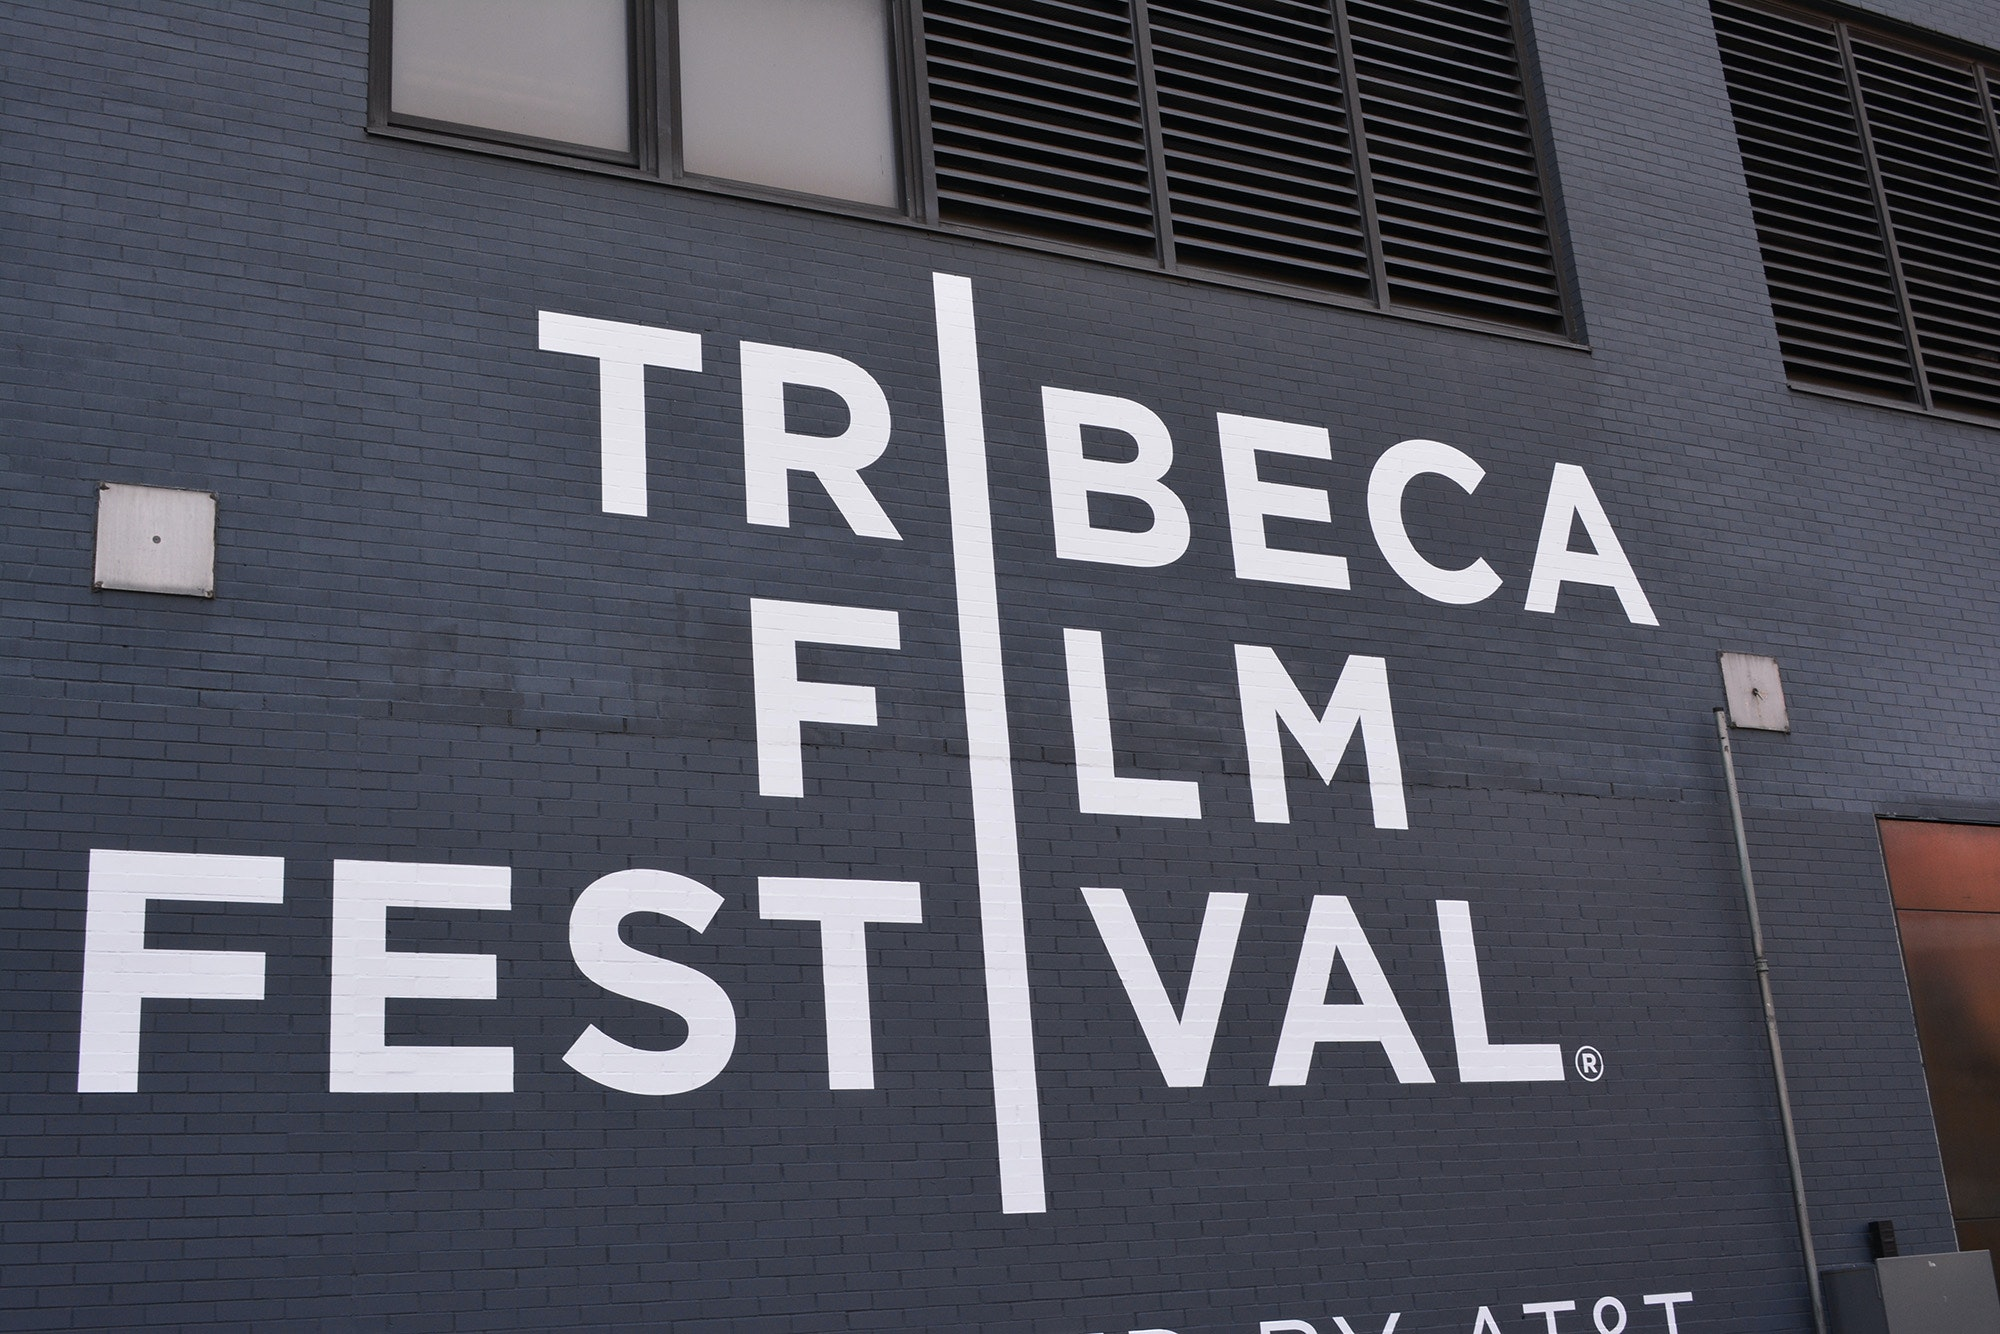 Passes to the Tribeca Film Festival go on sale February 19.